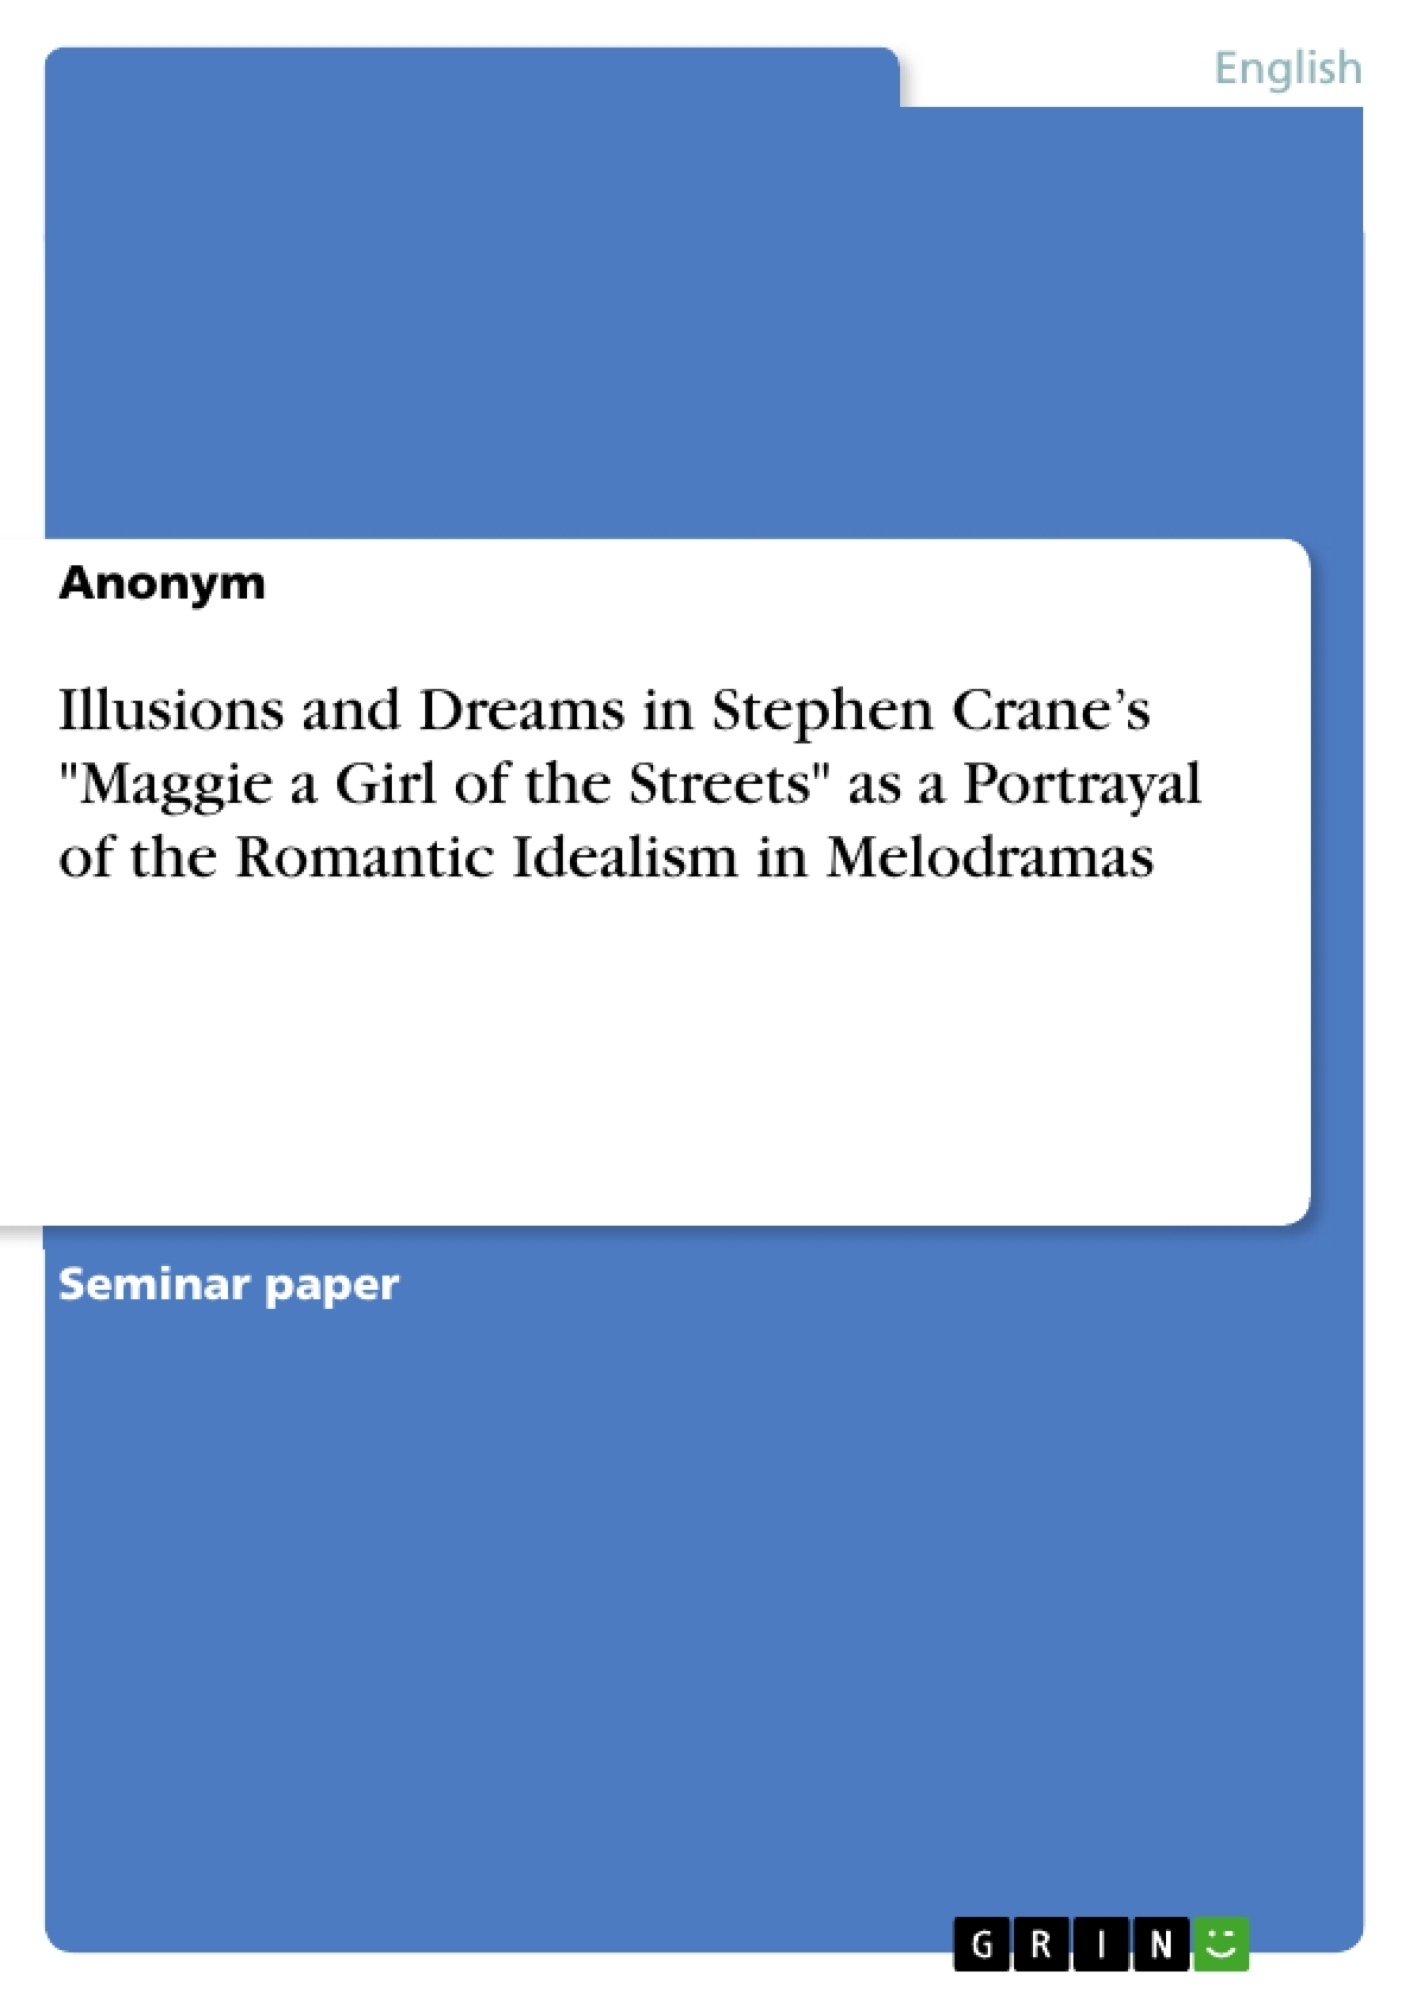 """Title: Illusions and Dreams in Stephen Crane's """"Maggie a Girl of the Streets"""" as a Portrayal of the Romantic Idealism in Melodramas"""